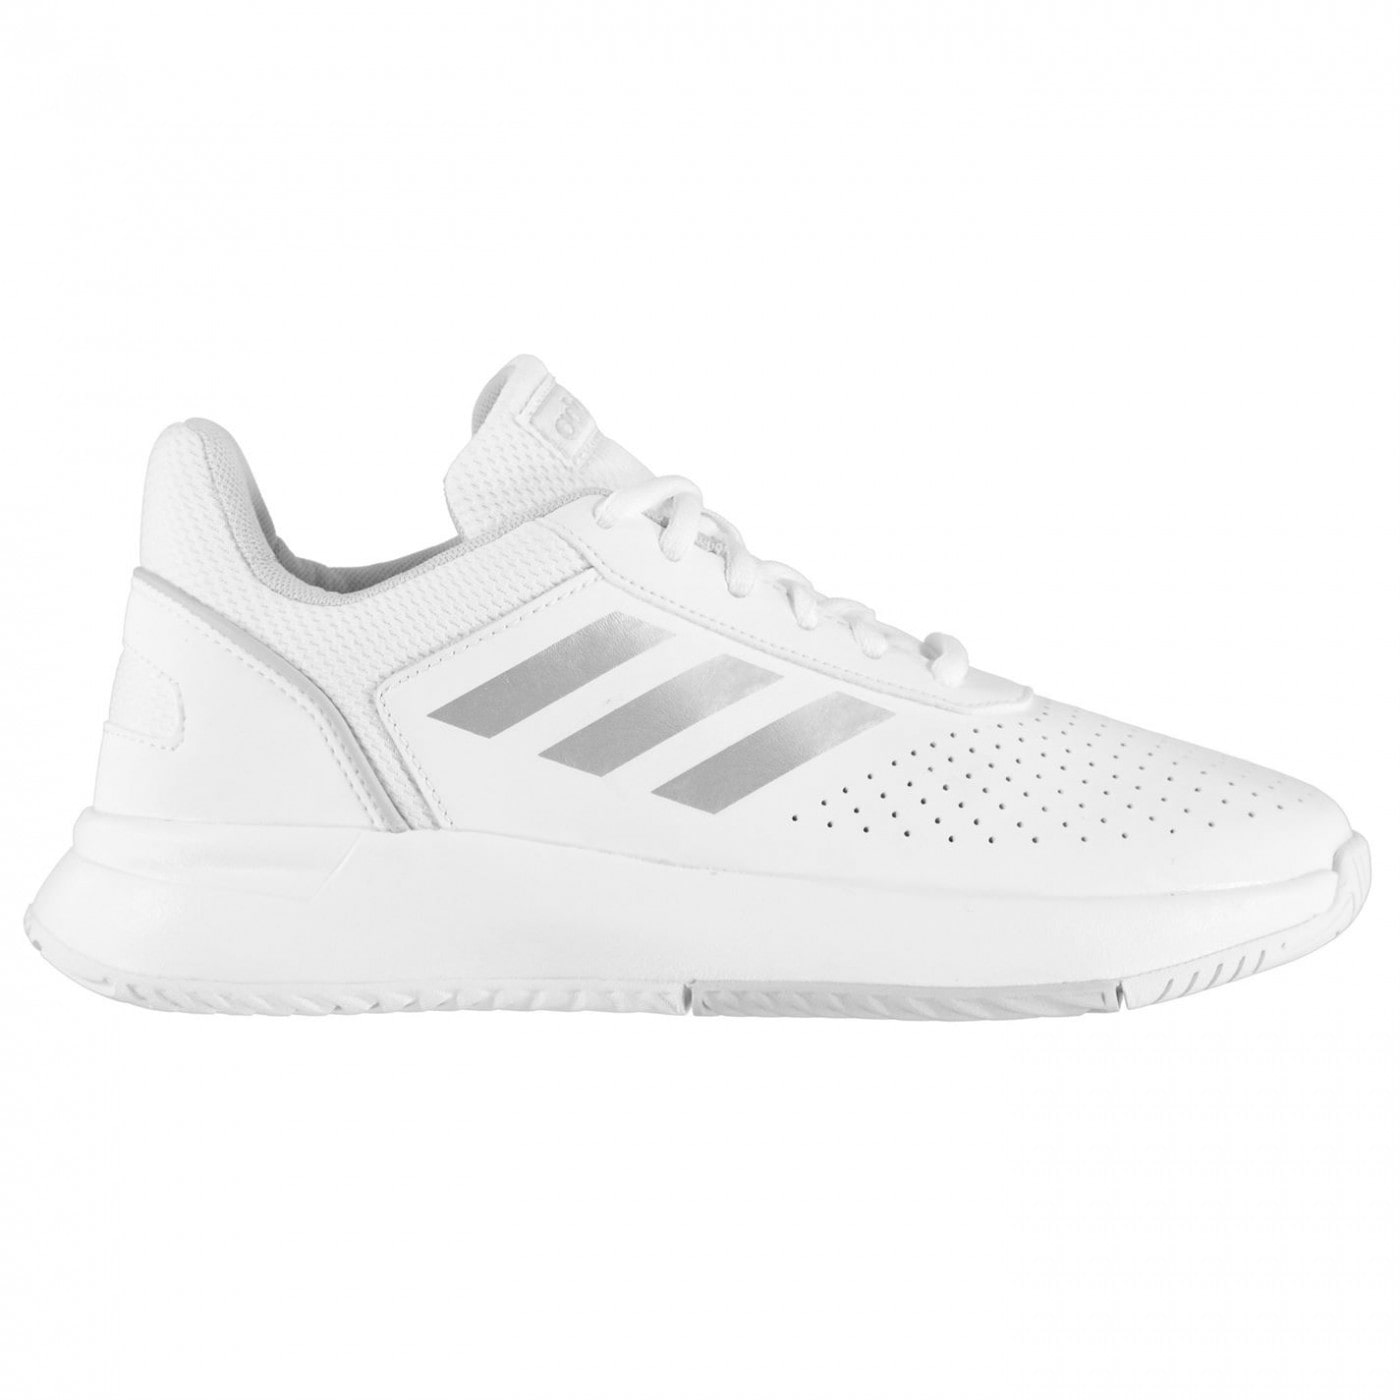 Adidas Courtsmash Tennis Shoes Ladies